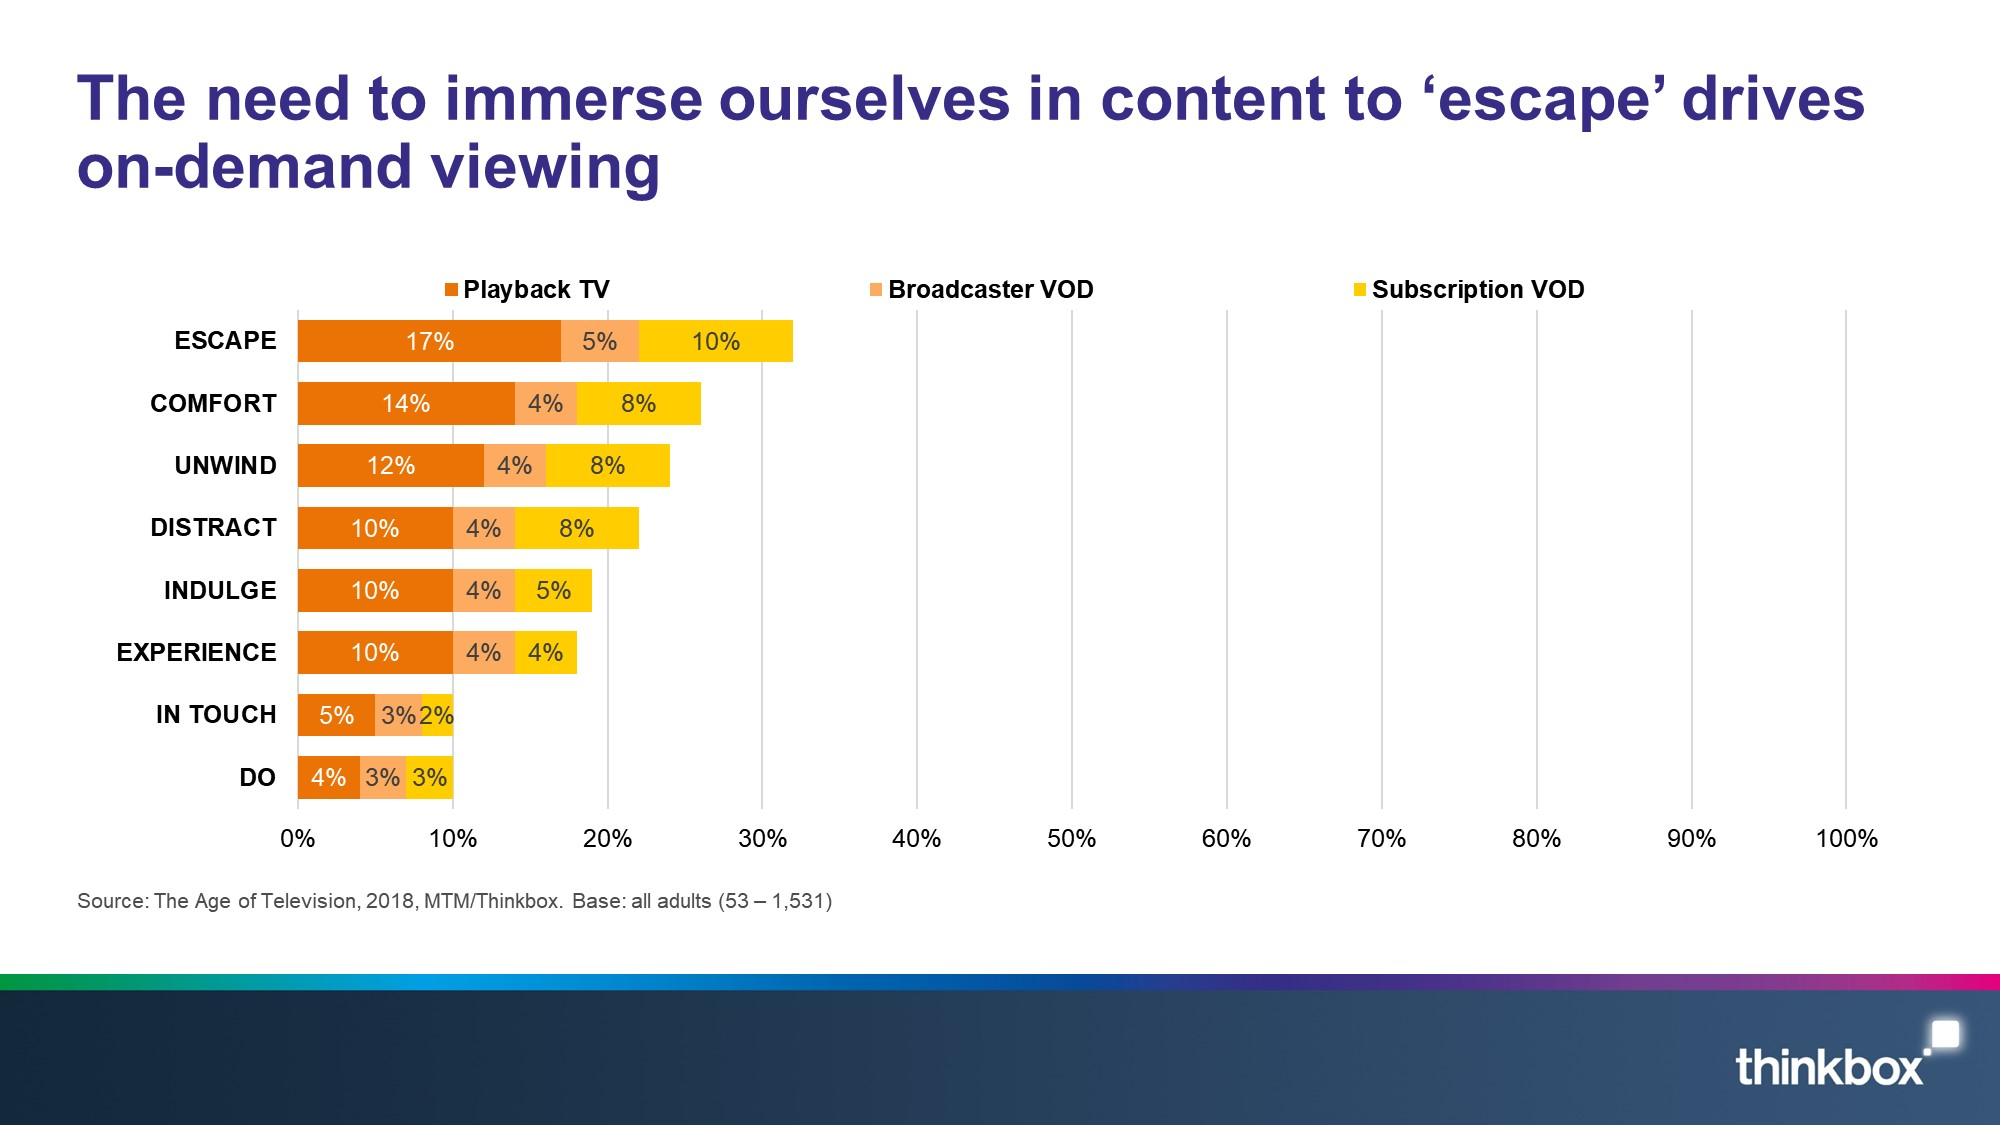 The need to immerse ourselves in content to 'escape' drives on-demand viewing